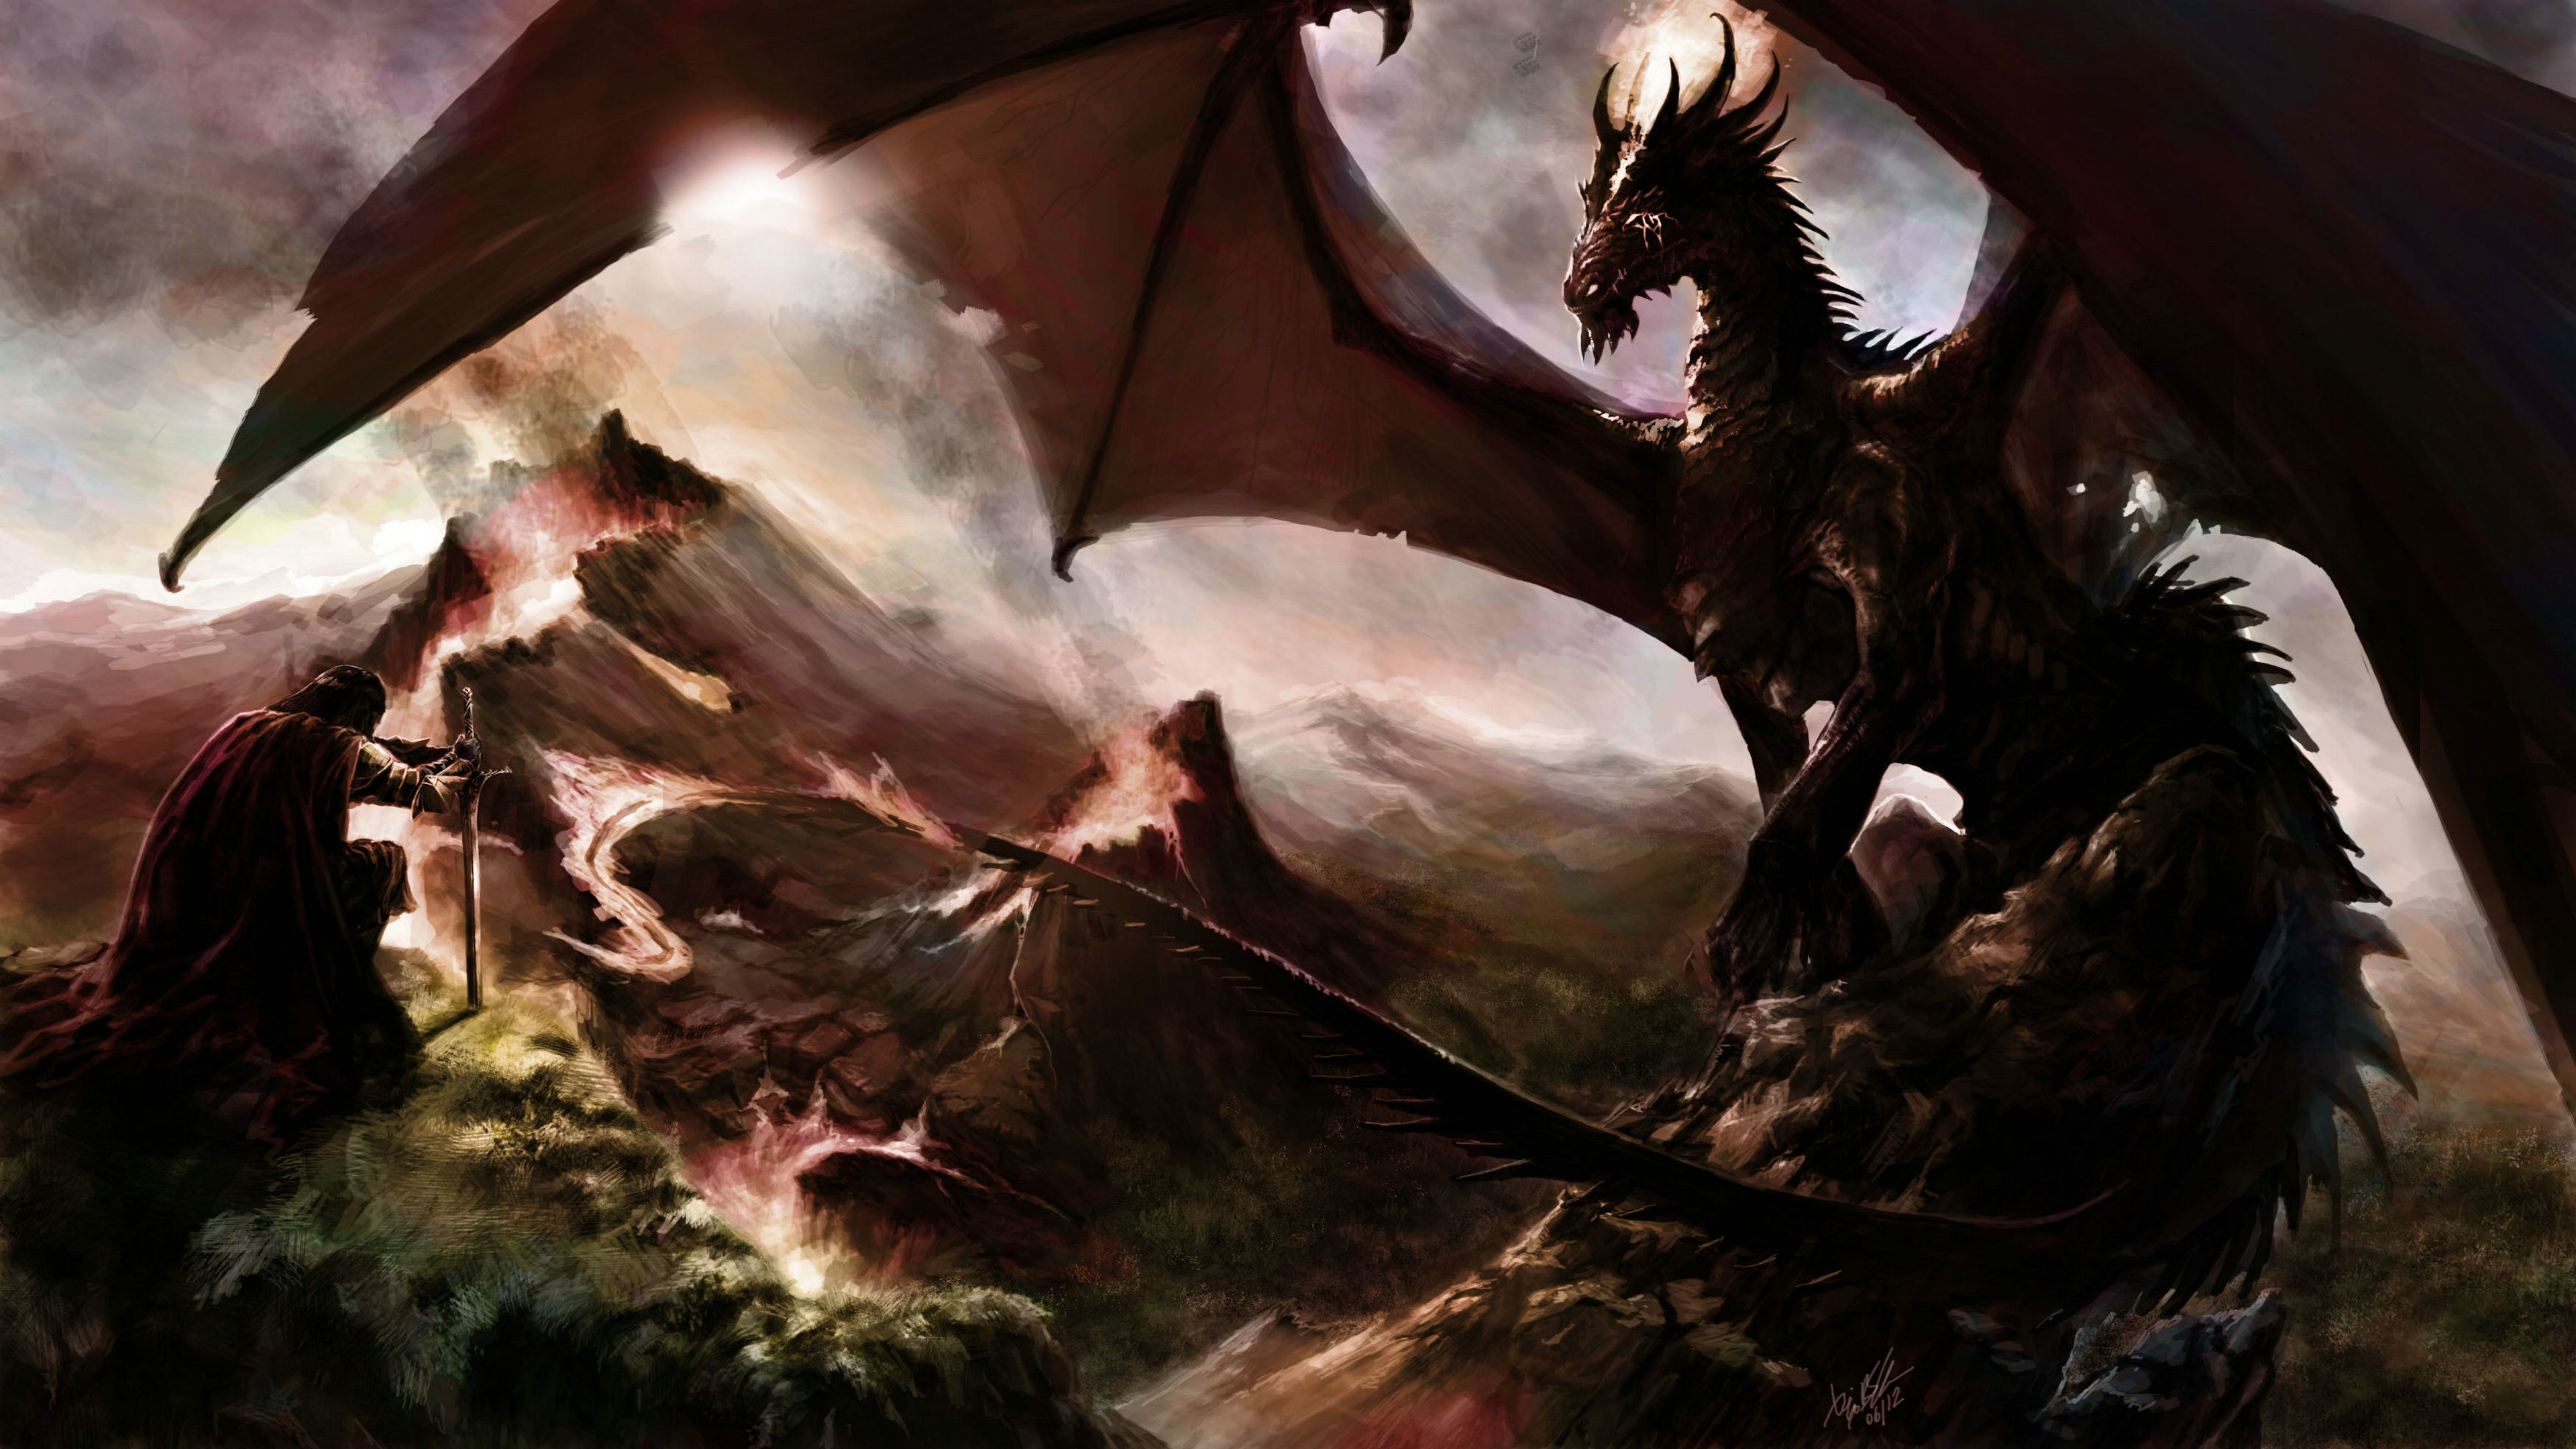 Fantasy Dragon Ultra Hd 4k Wallpapers Fotos De Dragao Fantasia De Dragao Dragoes